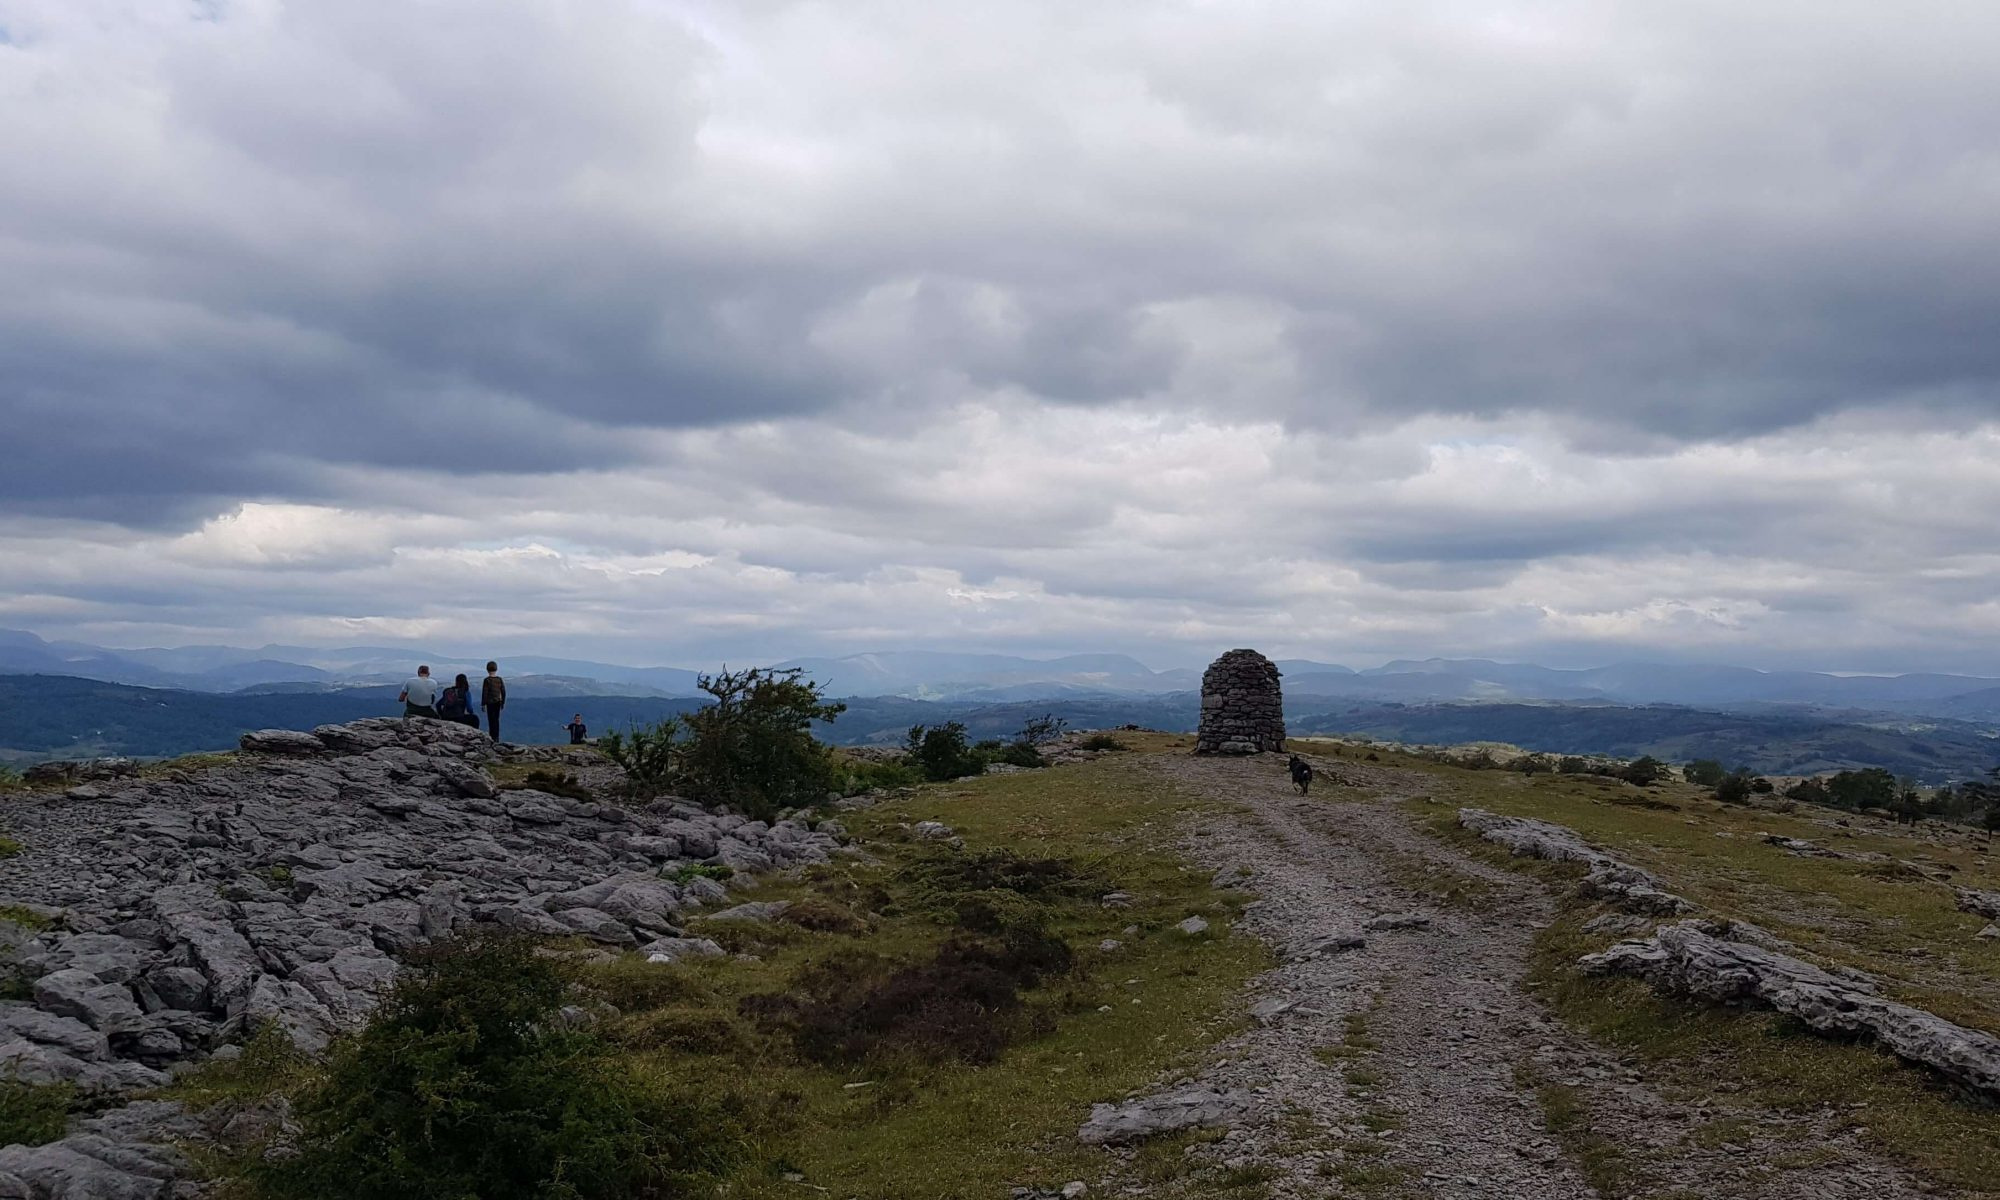 The summit of Whitbarrow, one of Wainwright's Outlying Fells of Lakeland